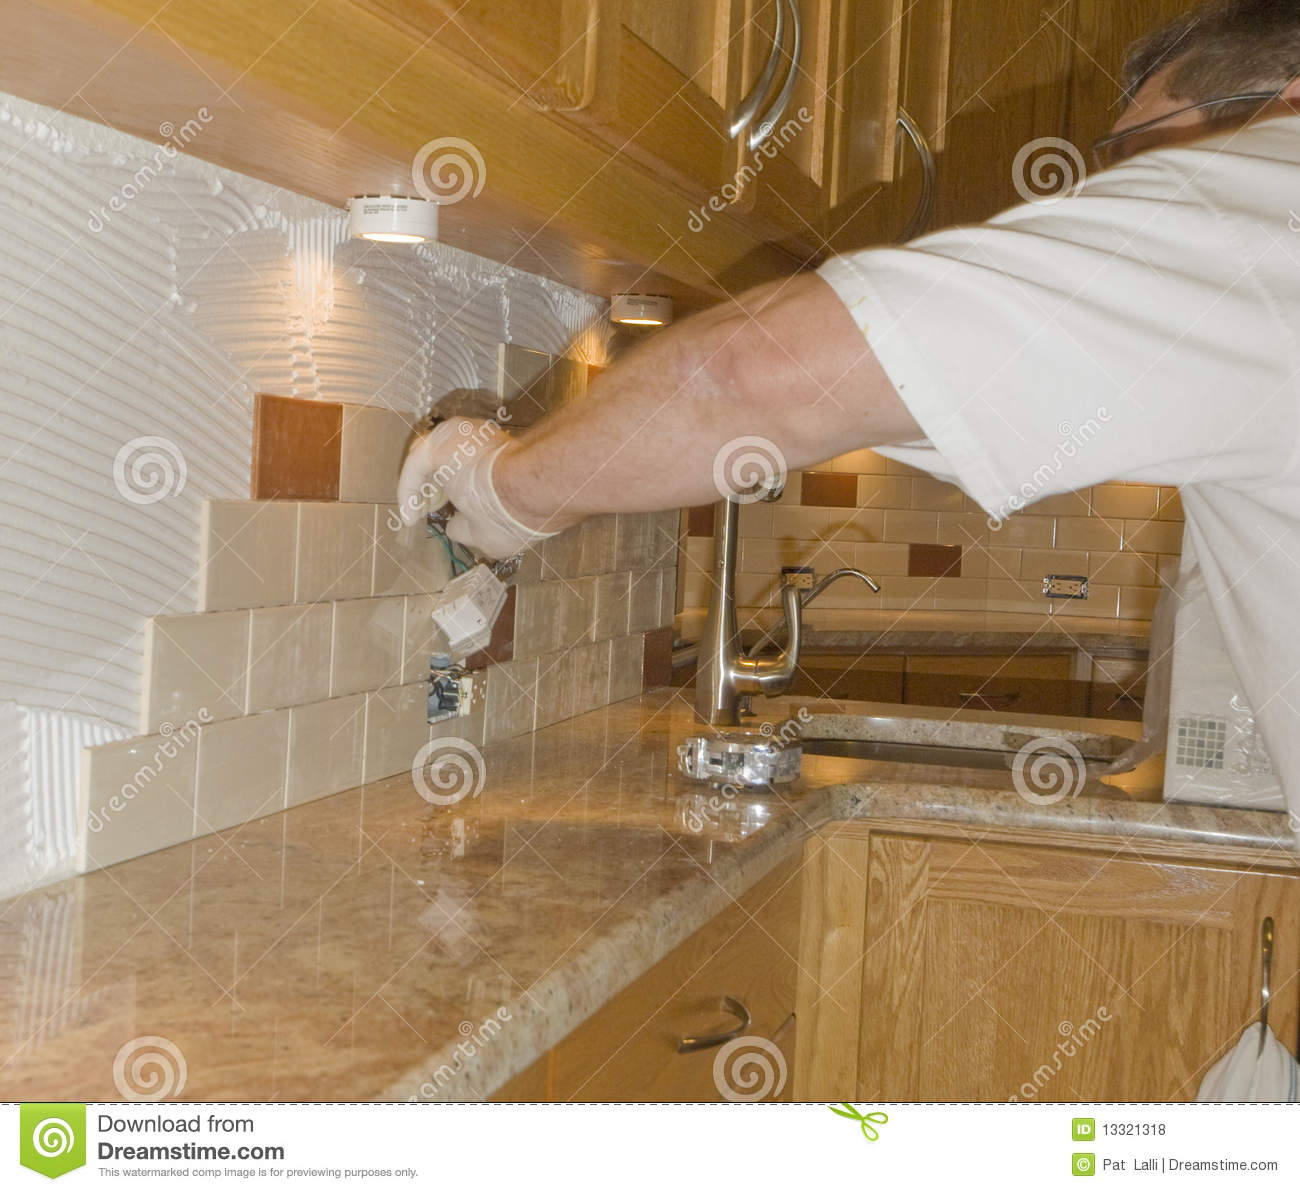 Ceramic Tile Installation On Kitchen Backsplash 12 Stock